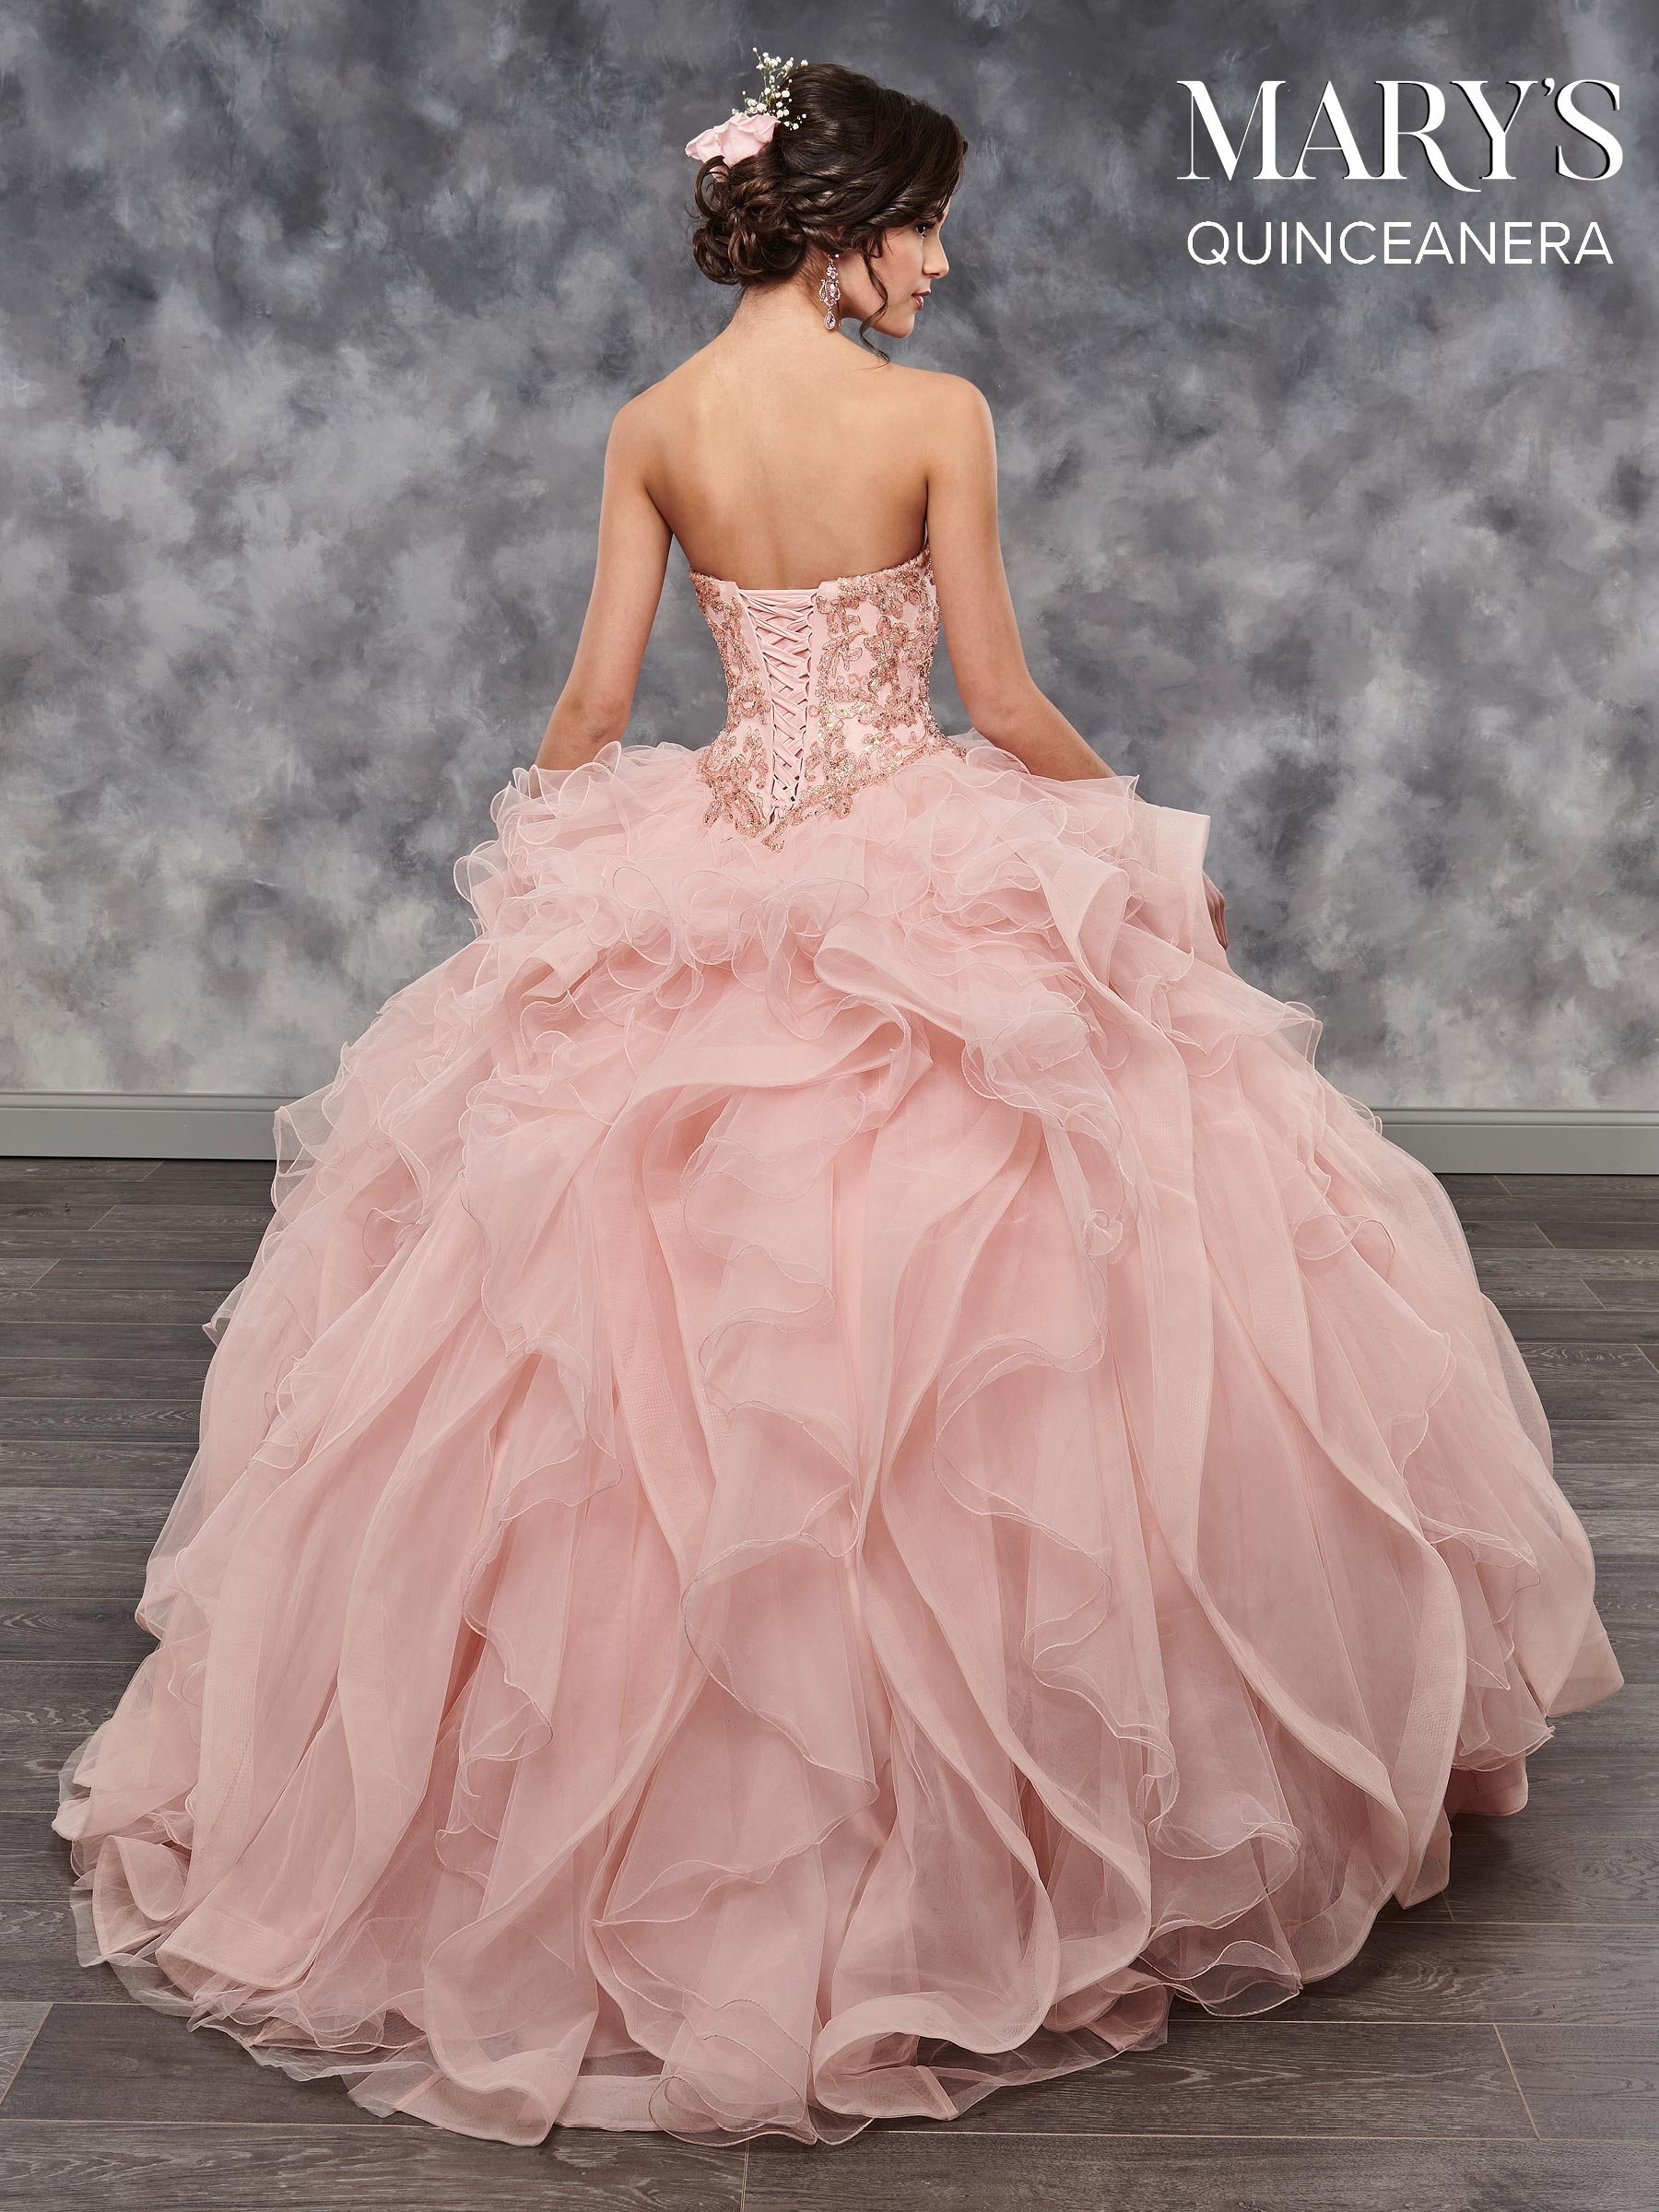 Marys Quinceanera Dresses | Mary's Quinceanera | Style - MQ2042